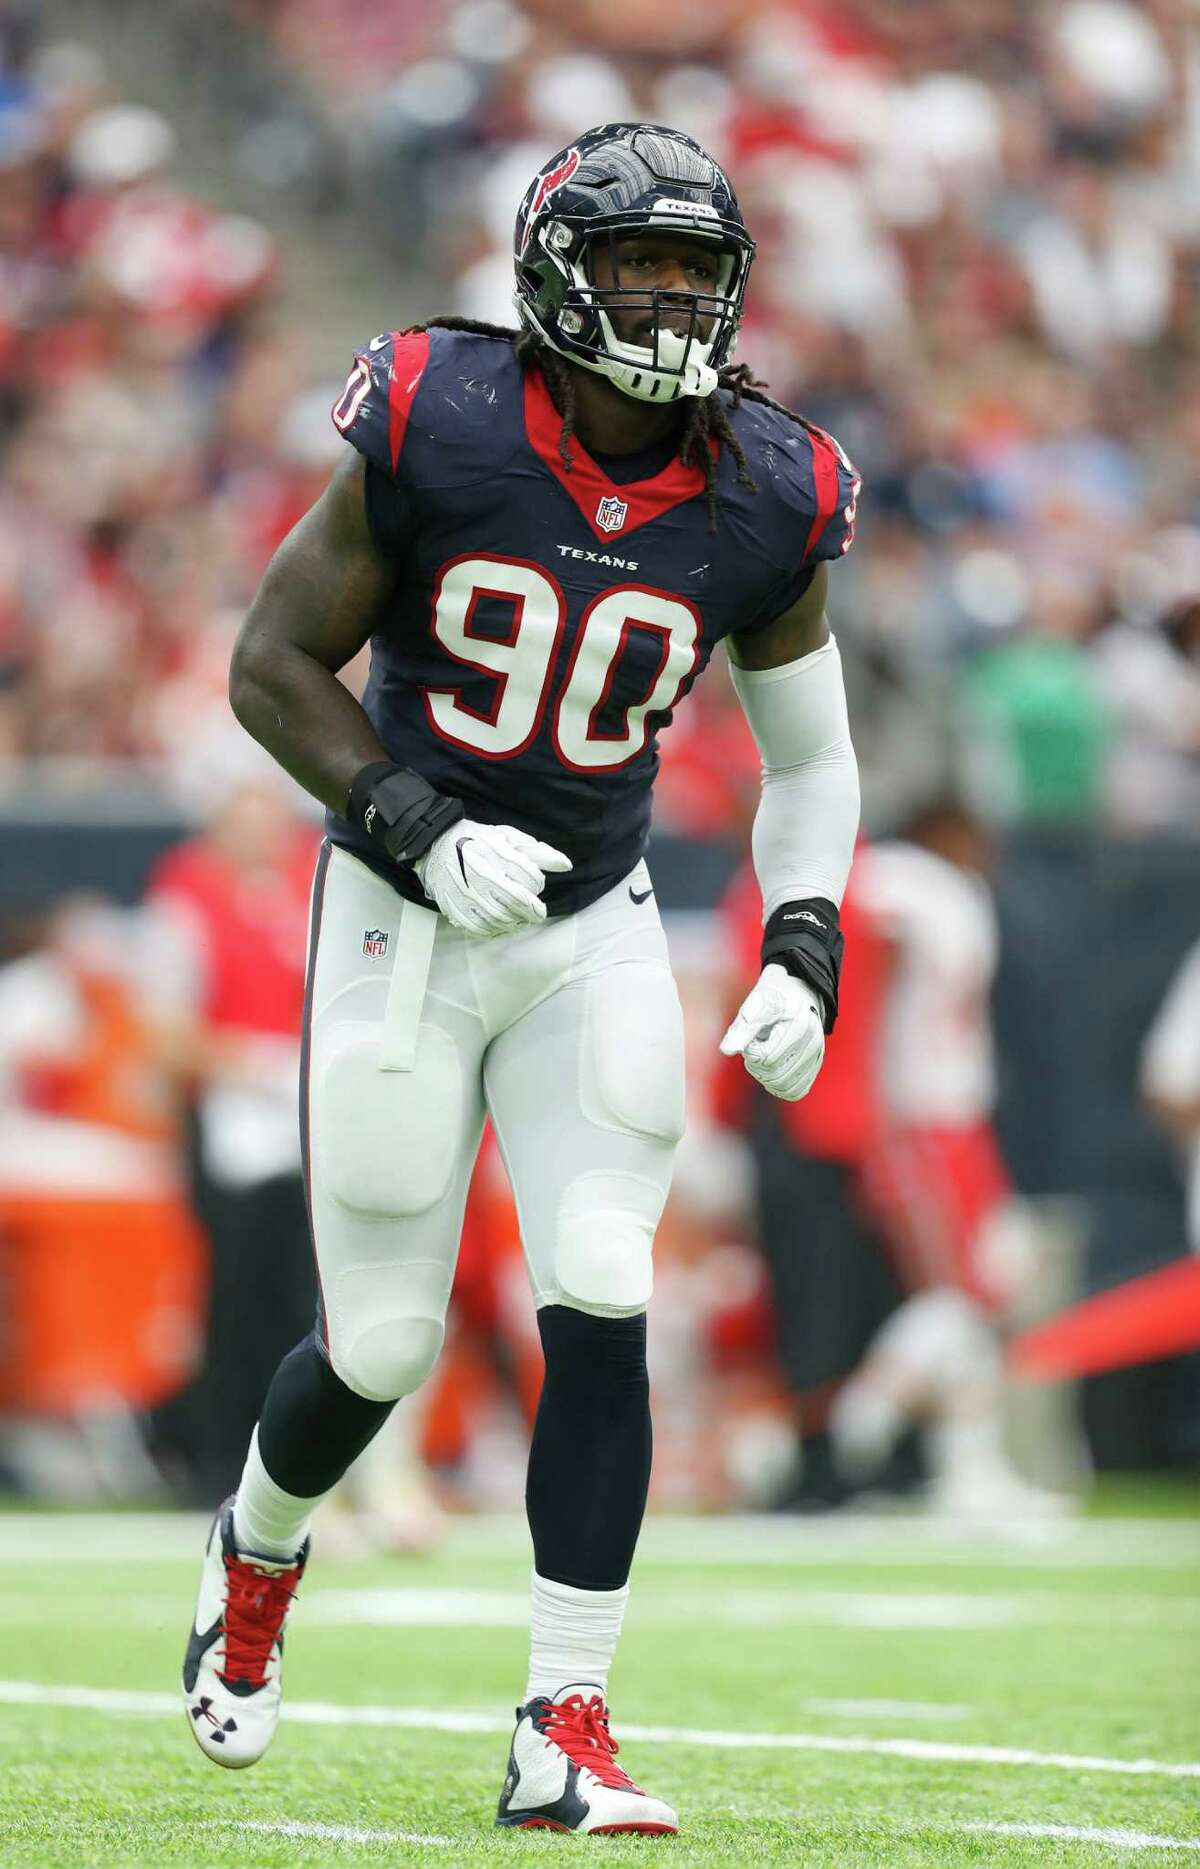 Houston Texans defensive end Jadeveon Clowney (90) gets up slowly after a play during the second quarter of an NFL football game at NRG Stadium, Sunday, Sept. 18, 2016 in Houston.